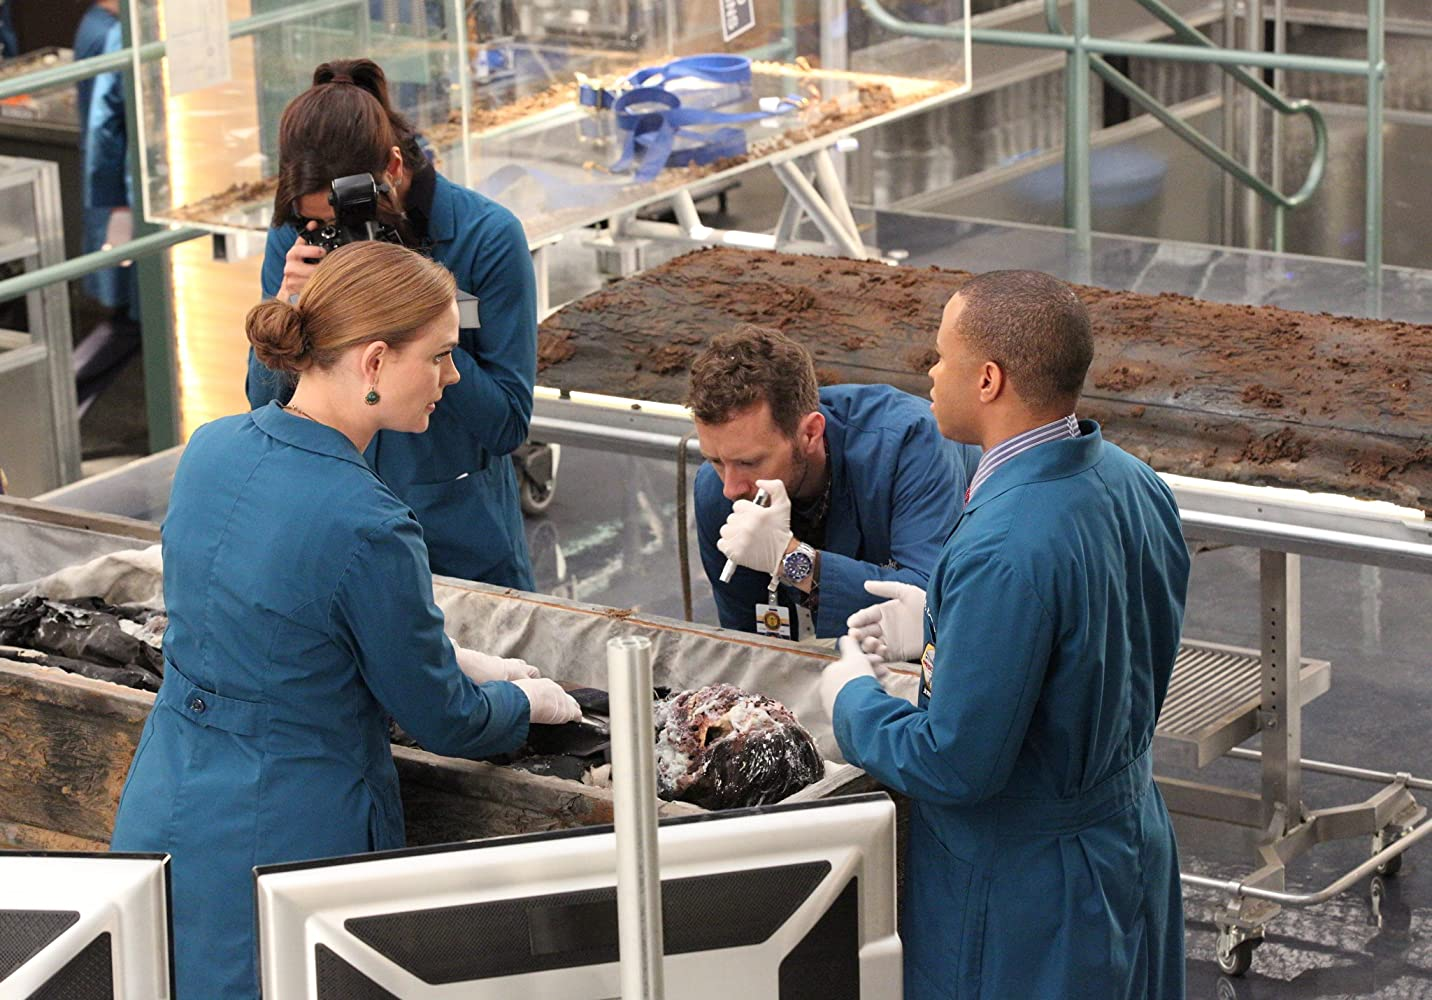 Eugene Byrd, Michaela Conlin, Emily Deschanel, and T.J. Thyne in Bones (2005)